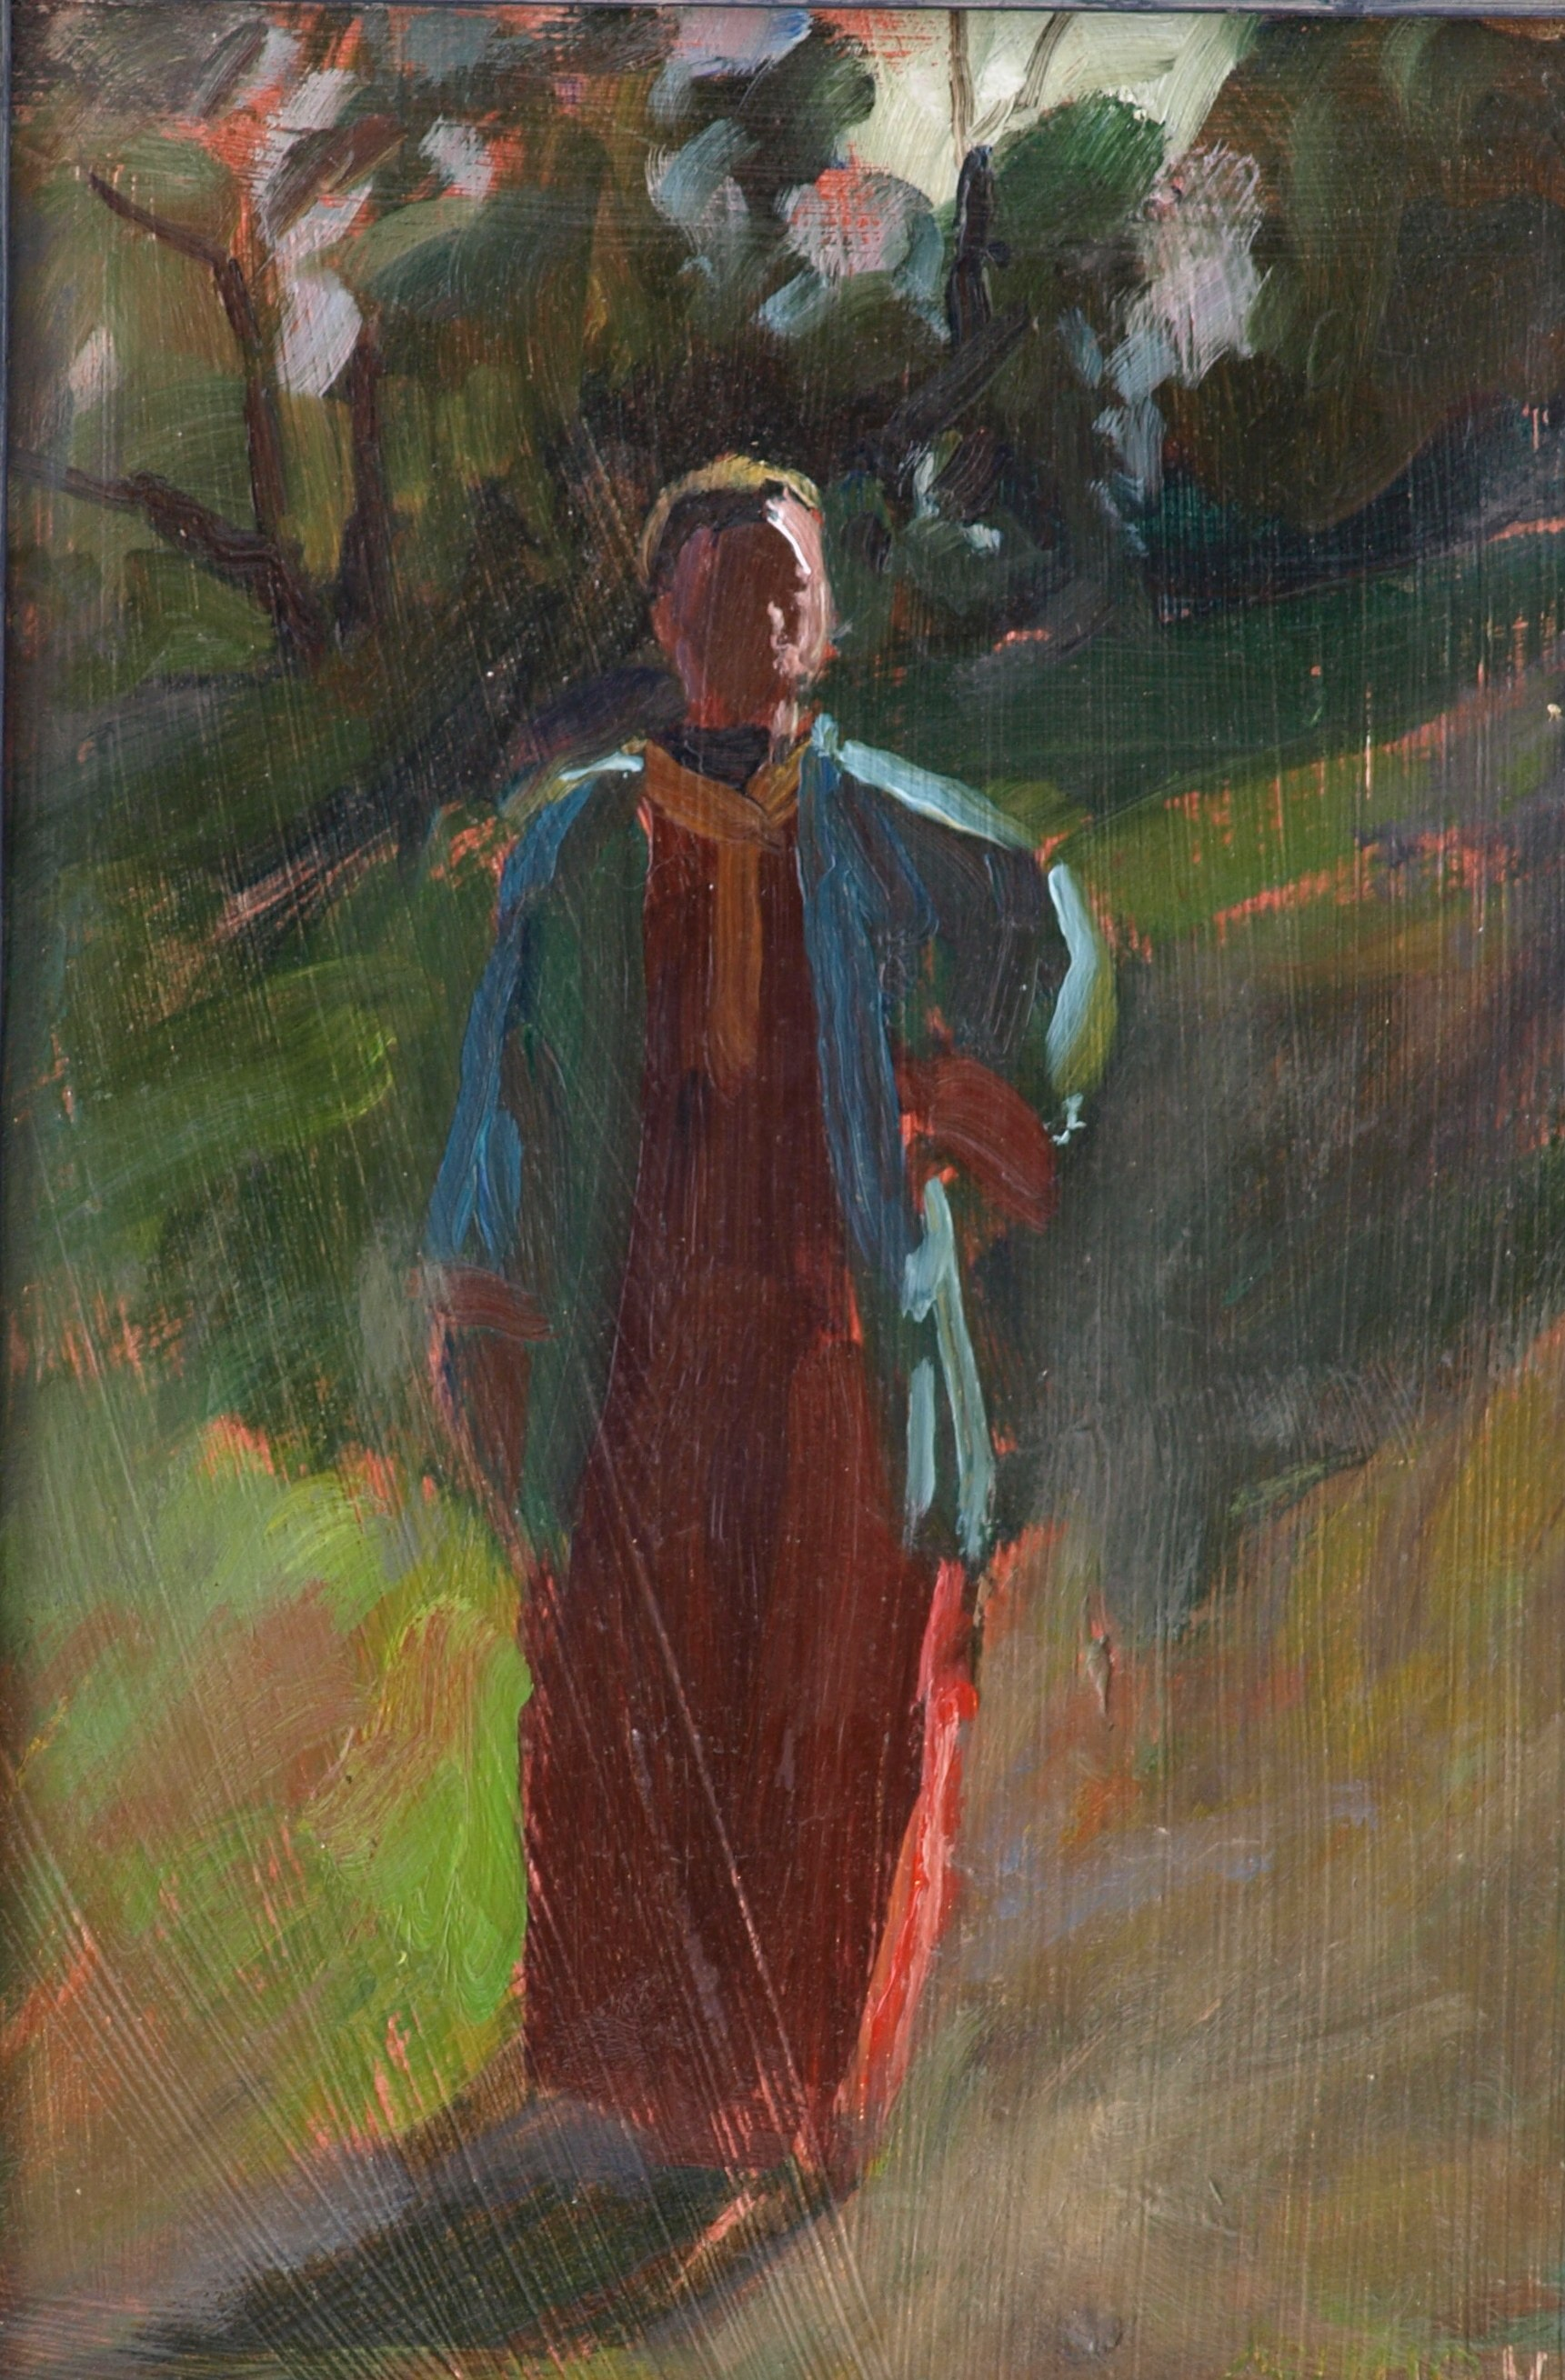 The Red Dress, Oil on Panel, 12 x 8 Inches, by Bernard Lennon, $200